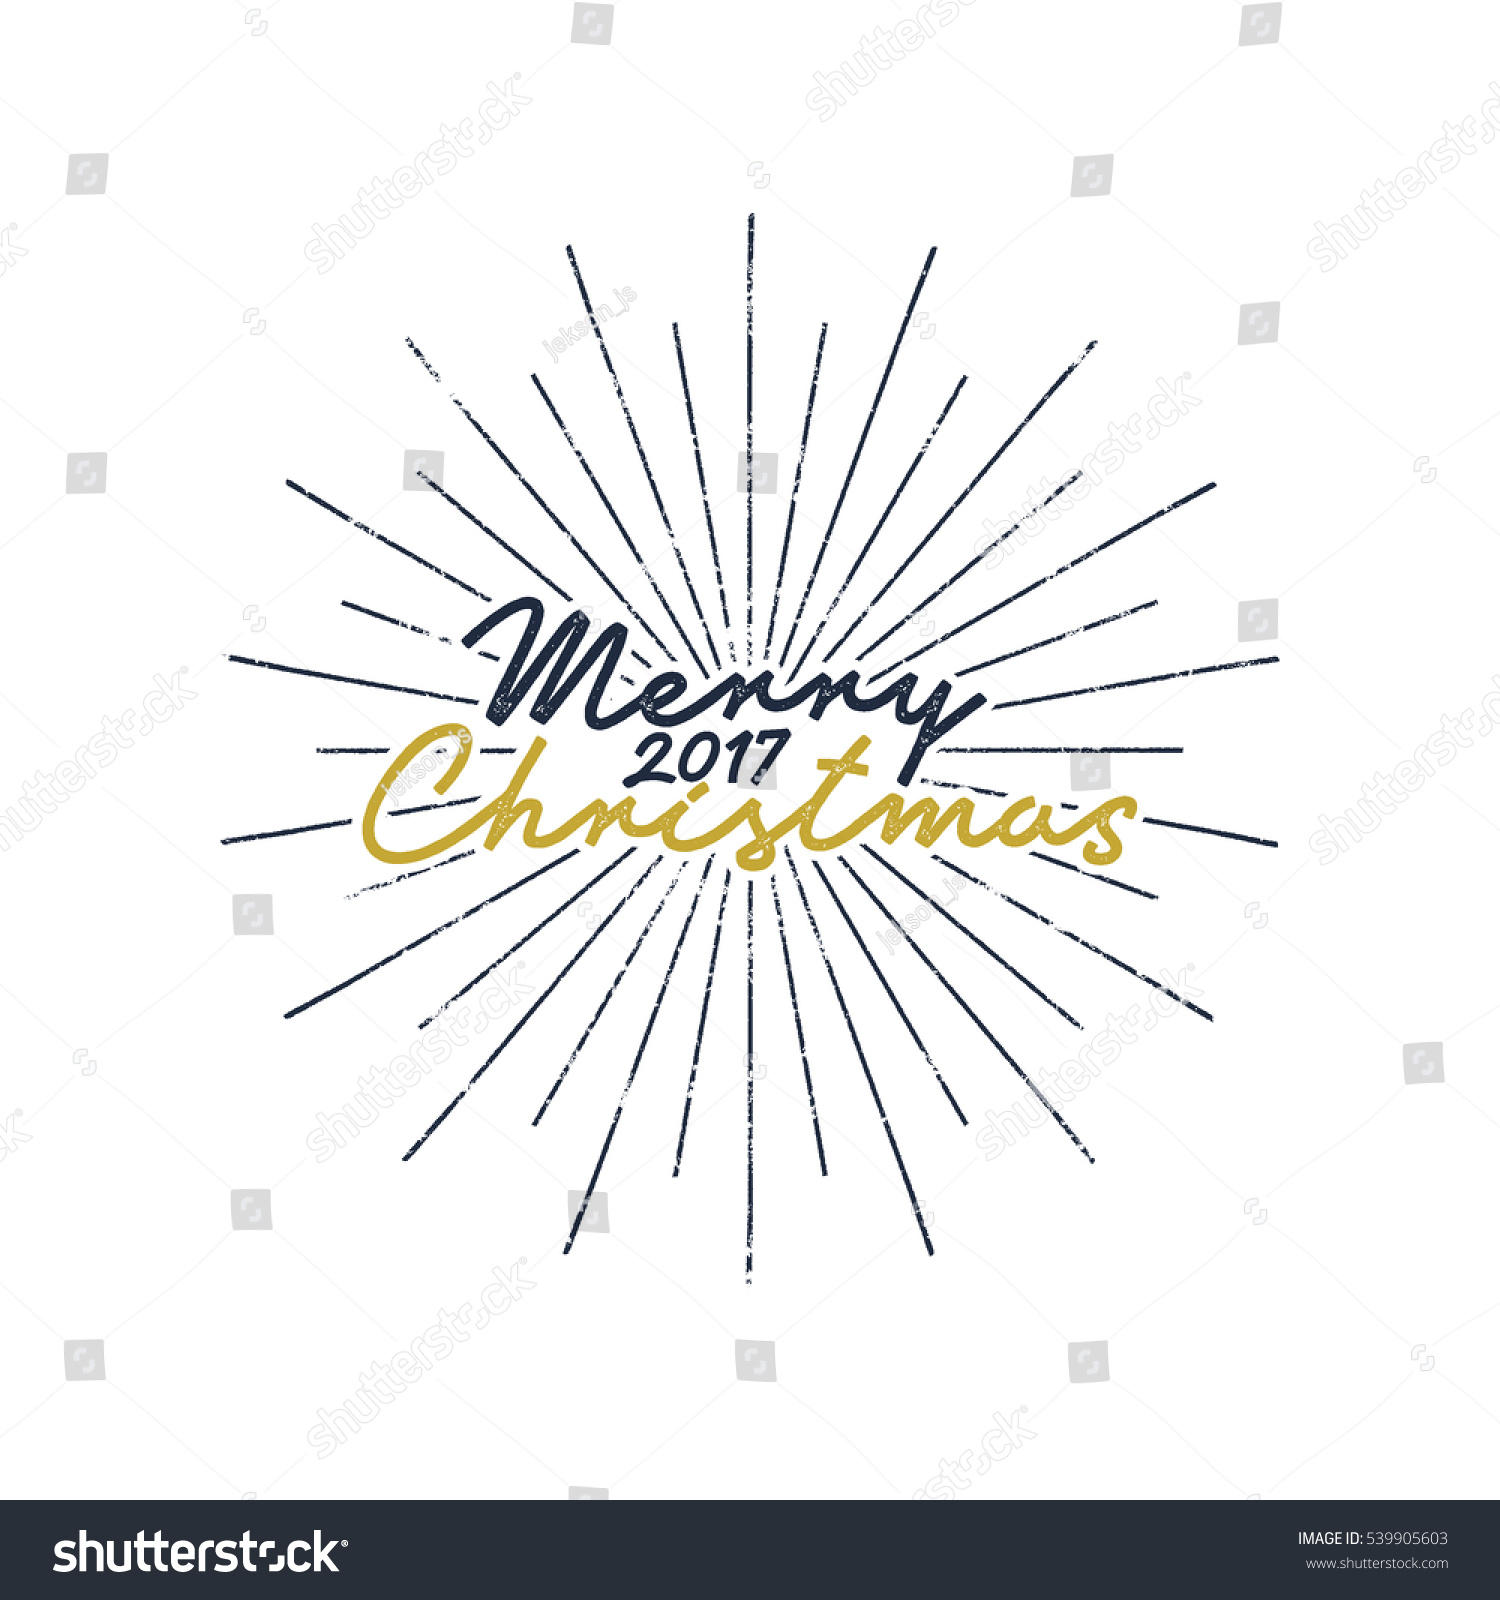 merry christmas and happy new year lettering holiday wish saying and vintage label